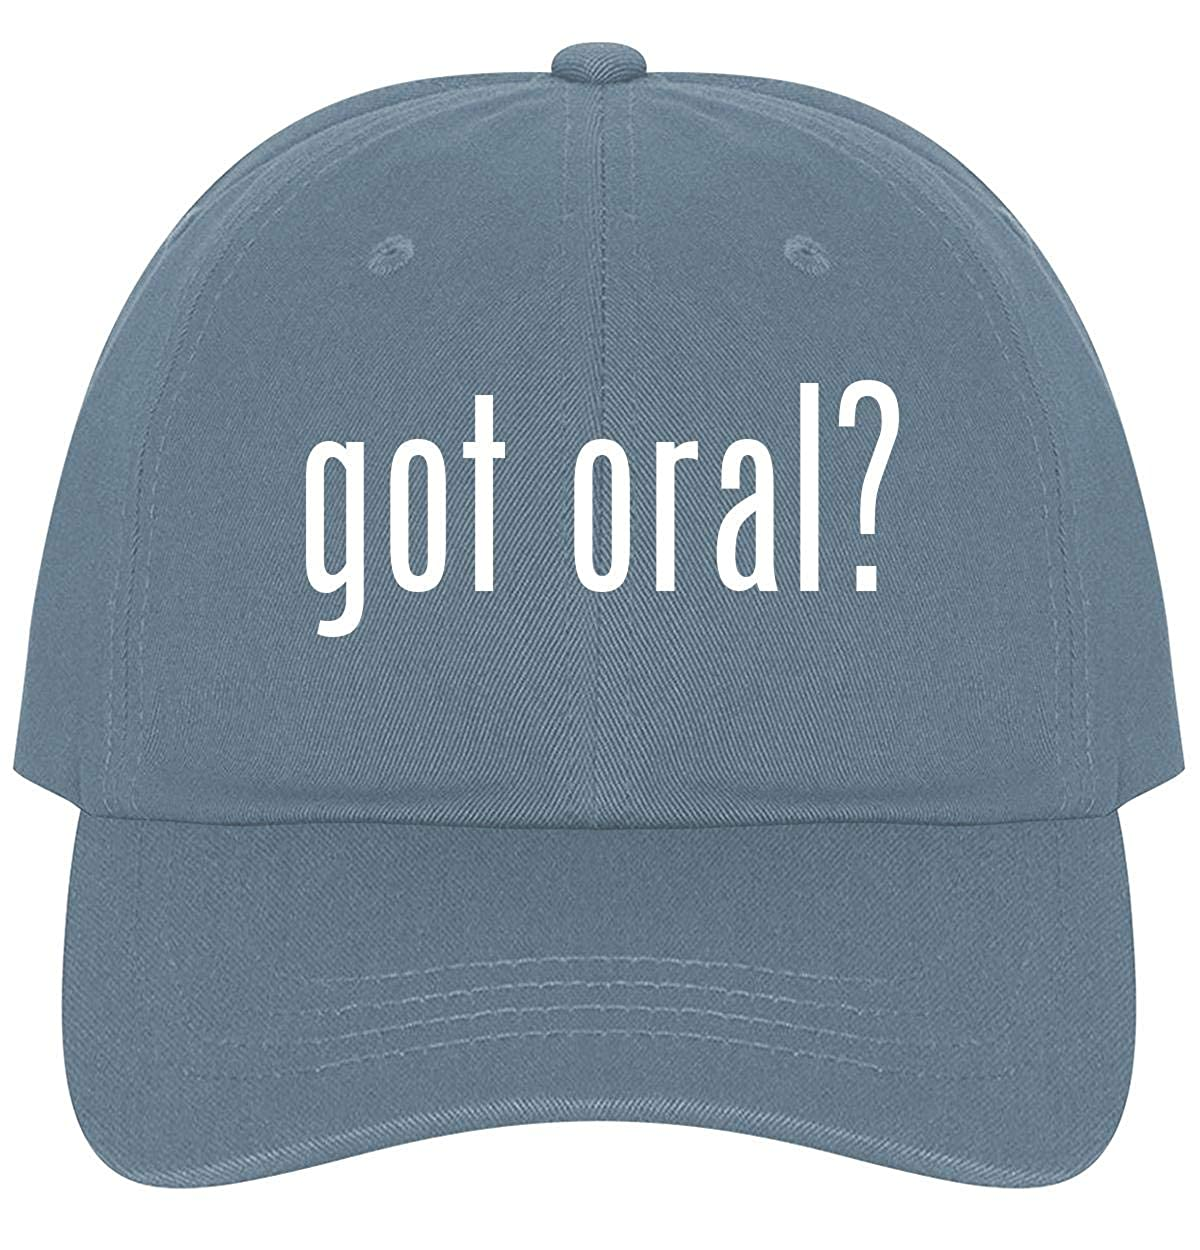 The Town Butler got Oral? - A Nice Comfortable Adjustable Dad Hat Cap